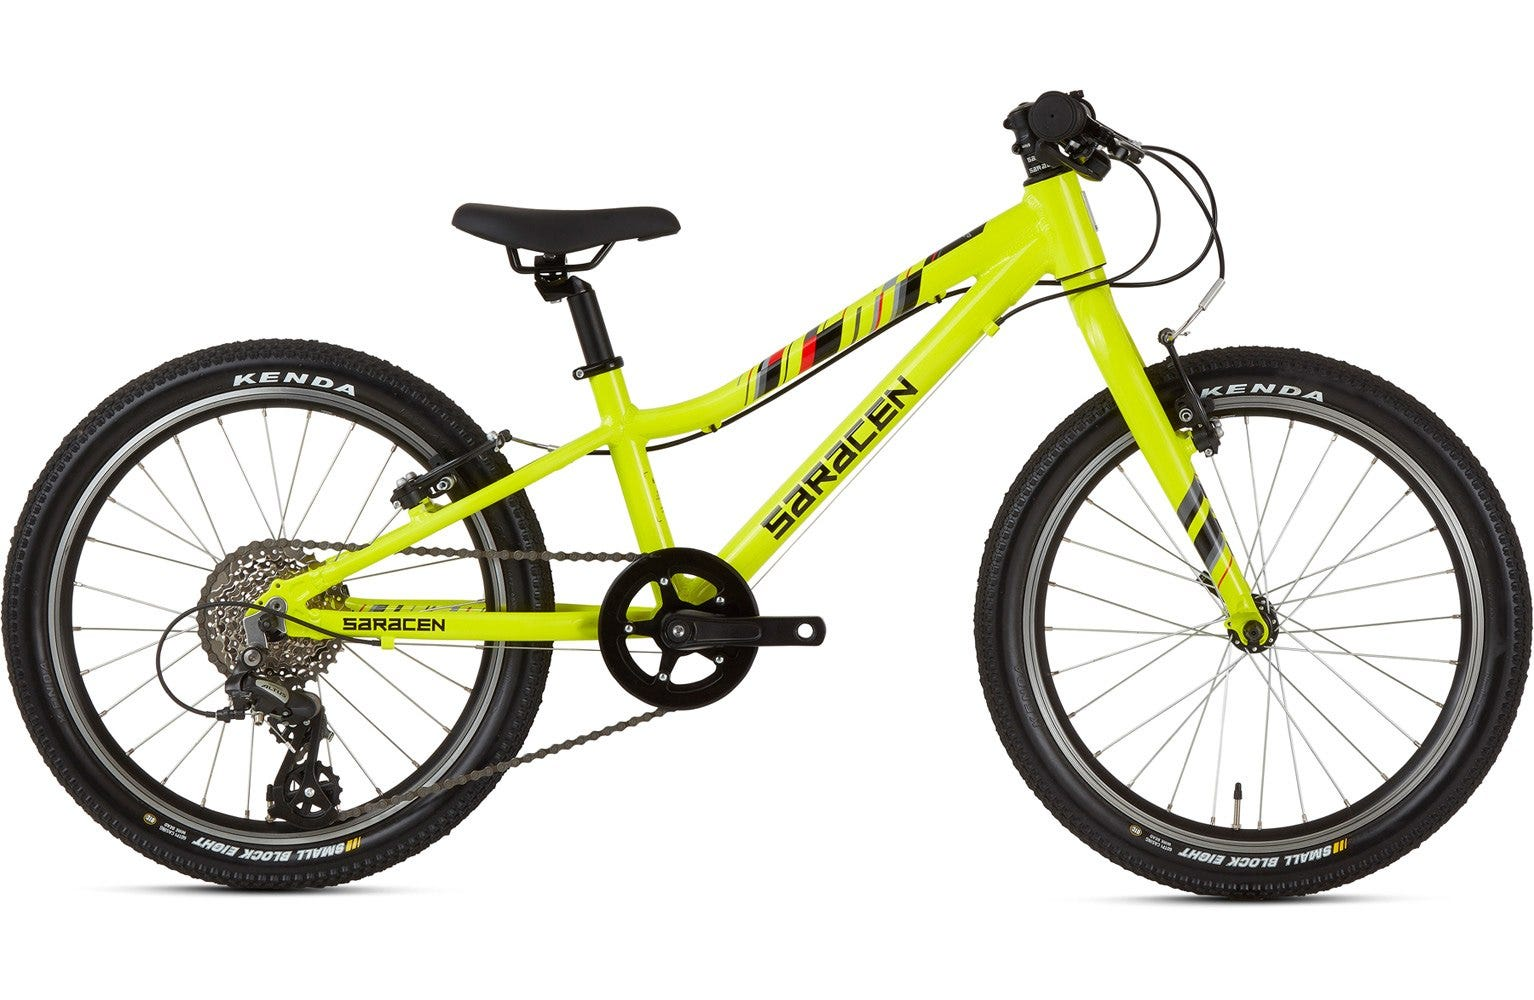 Saracen Mantra Rigid 20 inch bike sample (unused)